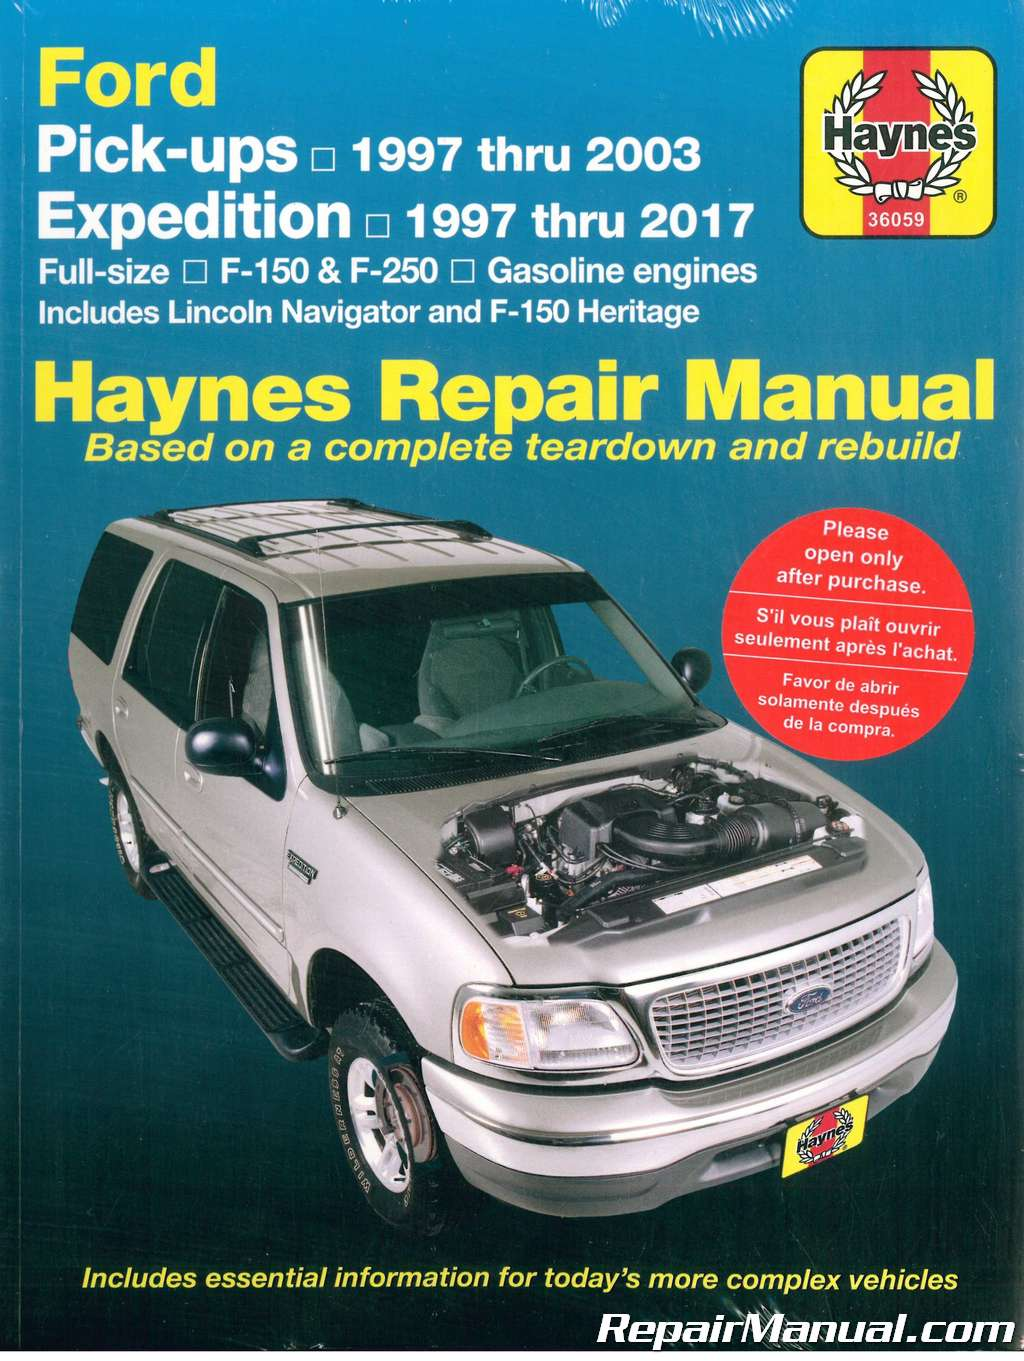 hight resolution of details about haynes ford pickup 1997 2003 expedition 1997 2017 repair manual h36059